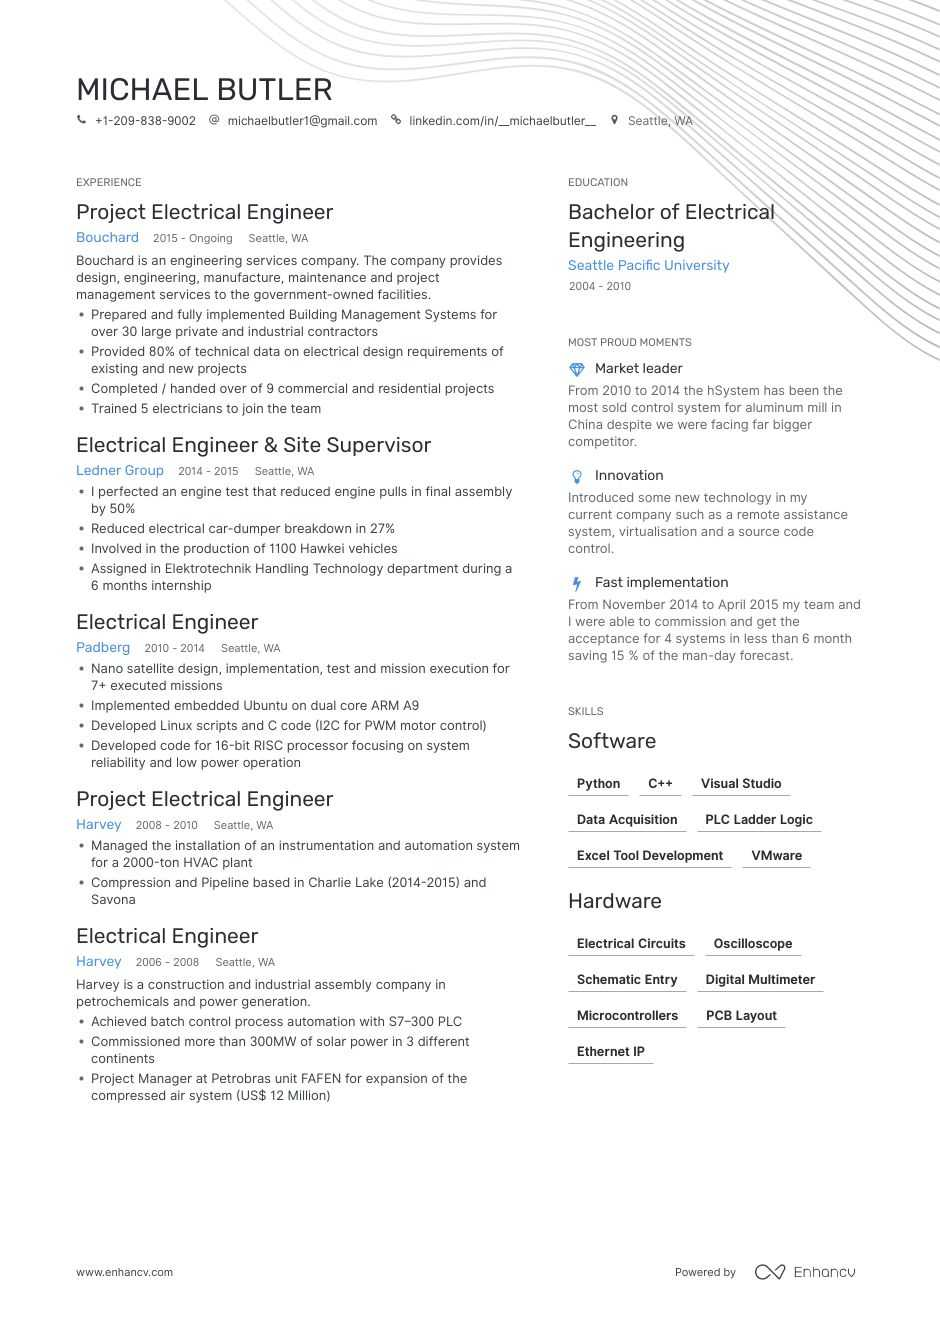 electrical engineer resume examples pro tips featured enhancv engineering format waitress Resume Engineering Resume Format